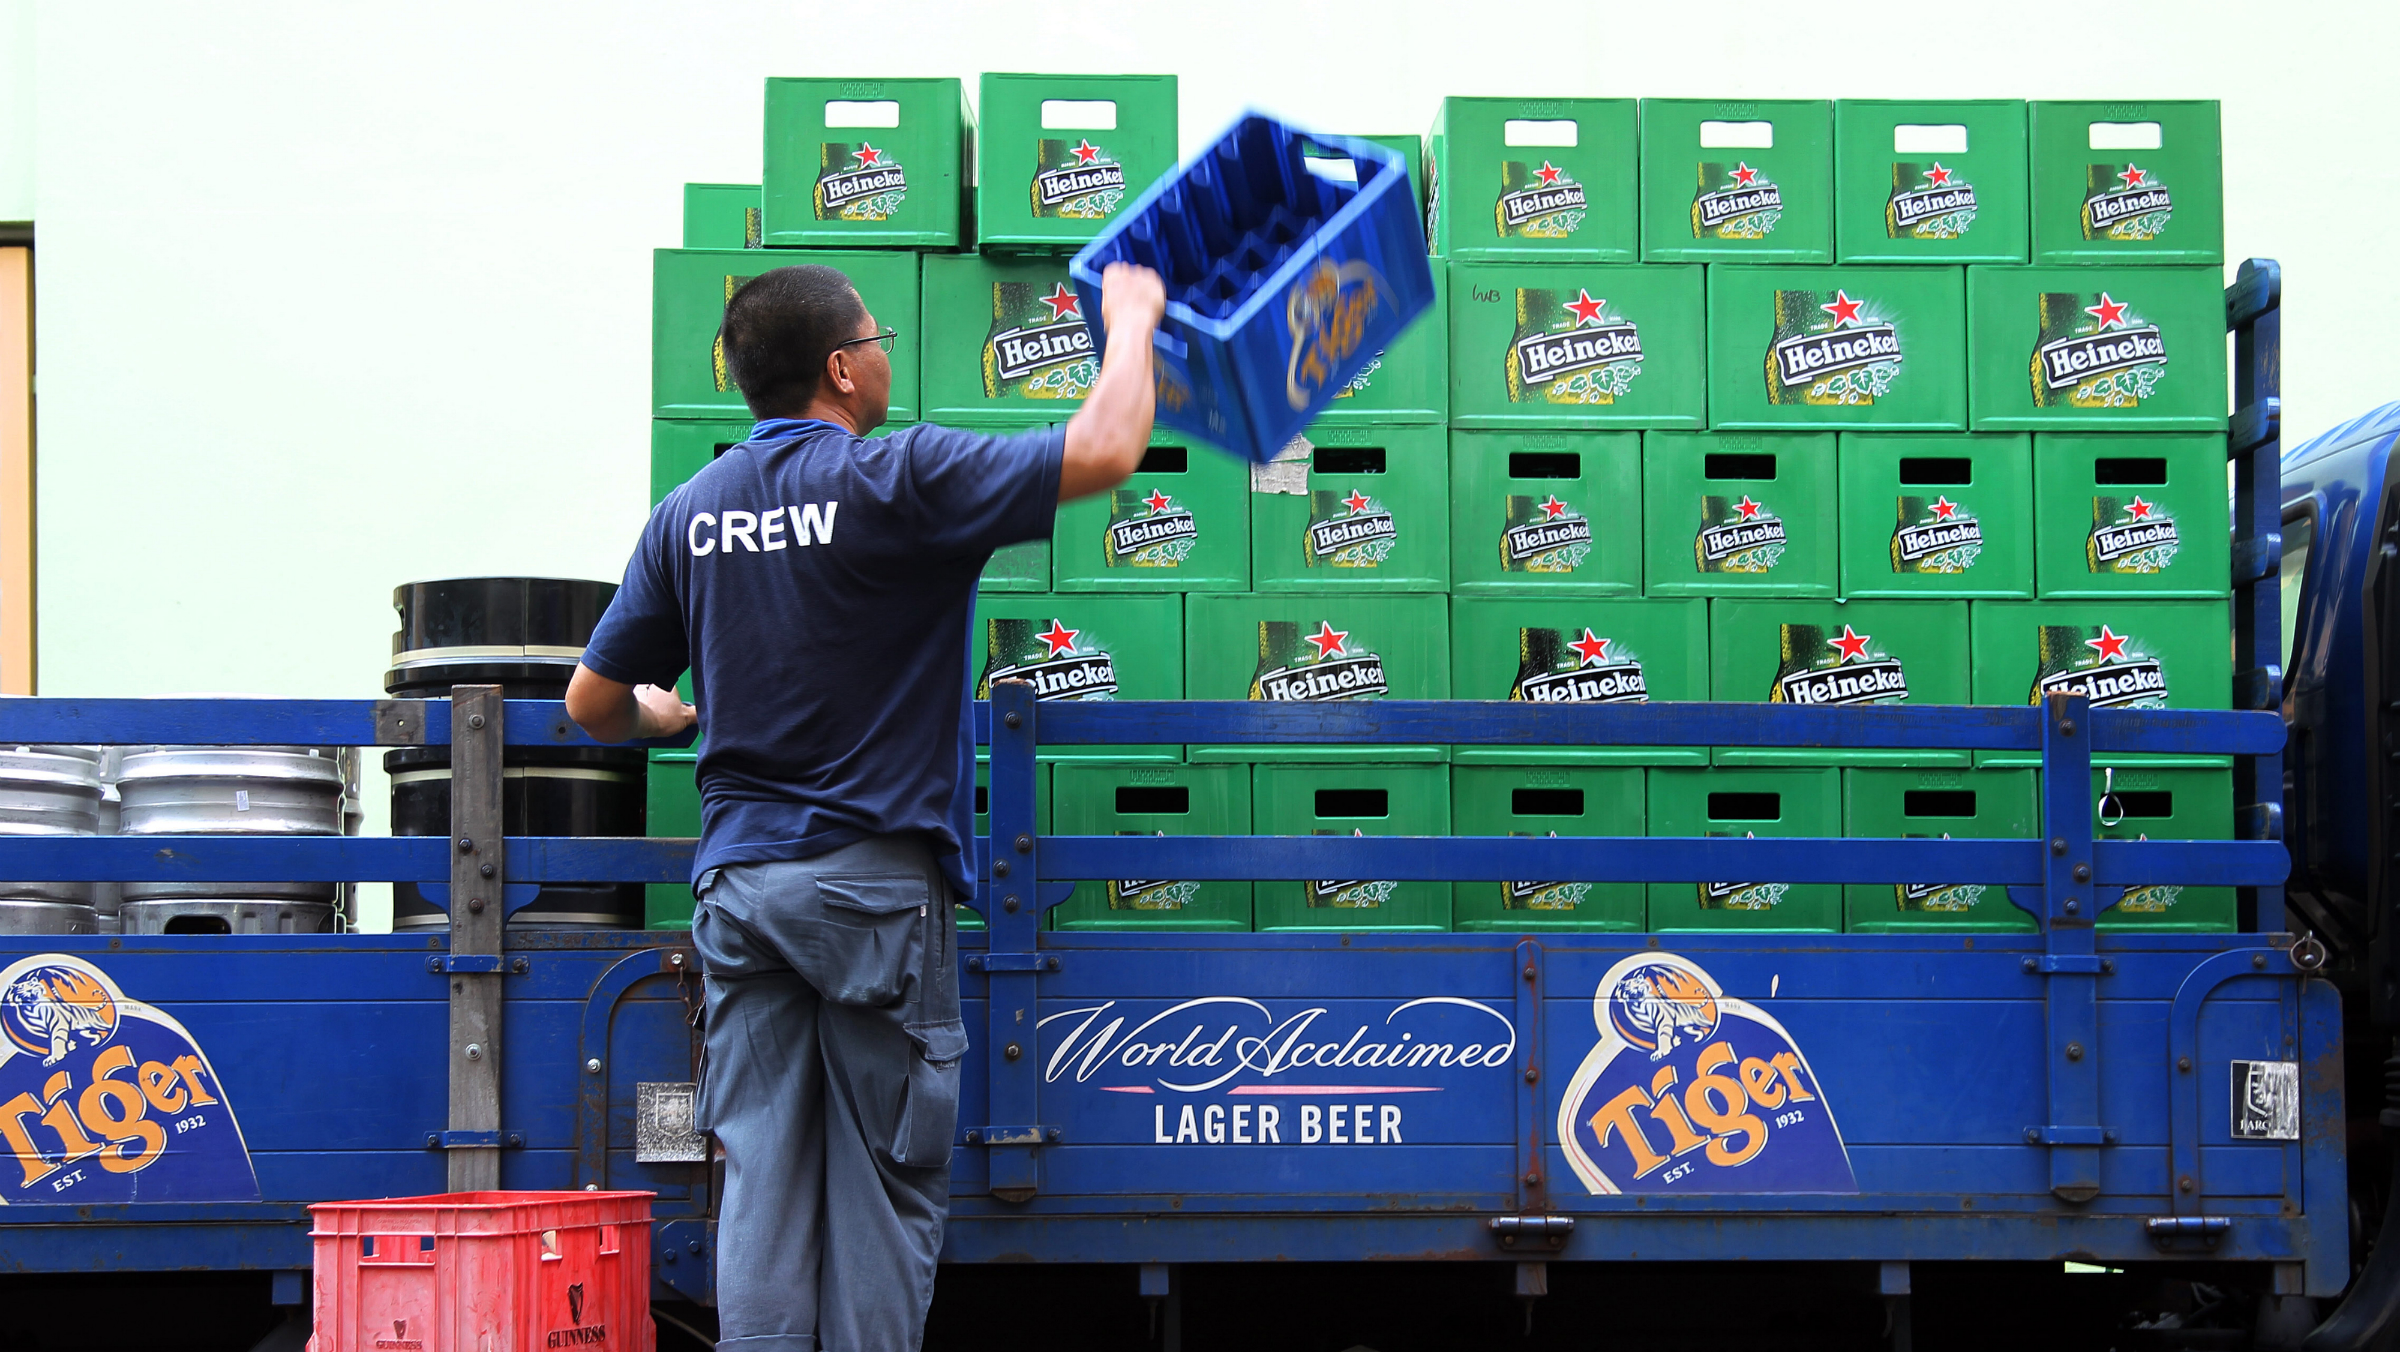 In this Aug. 14, 2012 file photo, a worker unloads a truck delivering Heineken and Tiger beer to a pub before its opening hours in Singapore. Heineken NV, based in Amsterdam, says it has sealed a deal giving it control over the Tiger beer brand, paying €4.7 billion ($6.1 billion) to significantly expand its presence in Asia. Shareholders of Singapore-based drinks conglomerate Fraser & Neave agreed Friday, Sept. 28 to sell its 39.7 percent stake in Asian Pacific Breweries, the owner of the Tiger brand, to Heineken. After Friday's deal, Heineken controls 95 percent of APB.